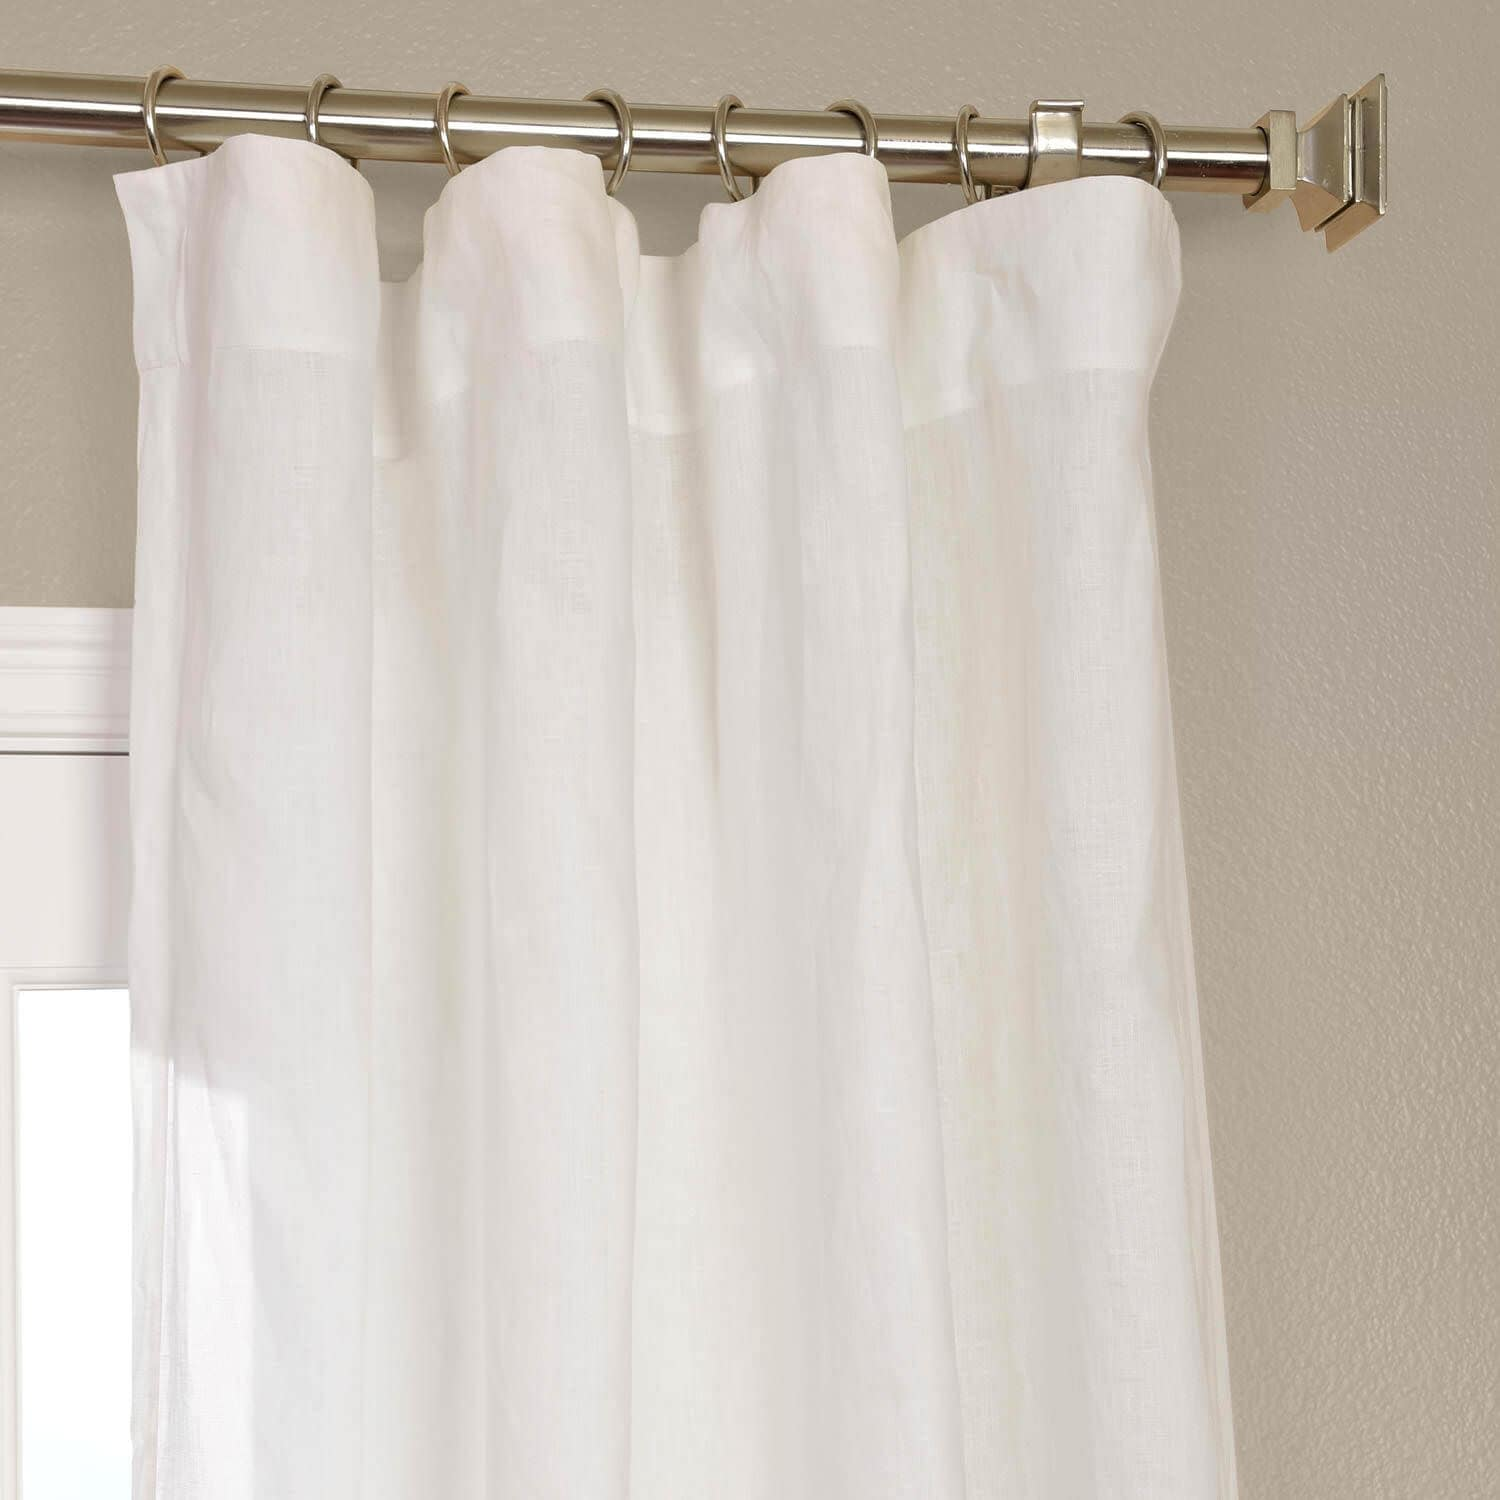 Lace Curtains And How To Clean Them Properly Signature Antique Lace French Linen Sheer Curtain ...